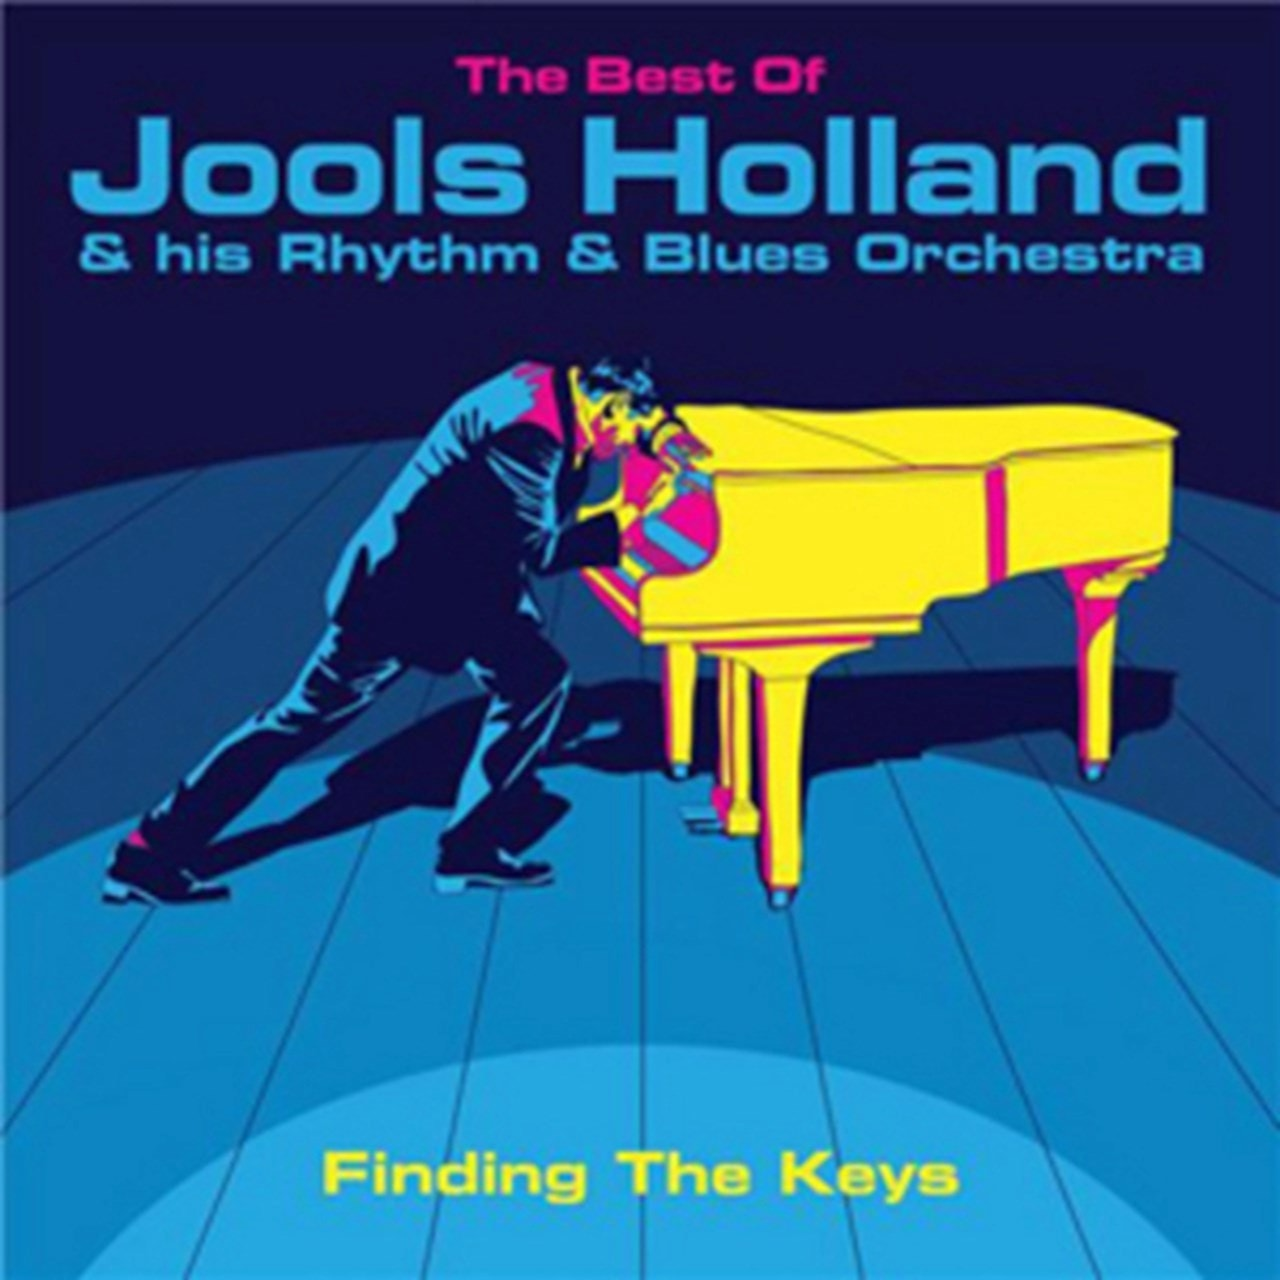 Finding the Keys: The Best of Jools Holland - 1